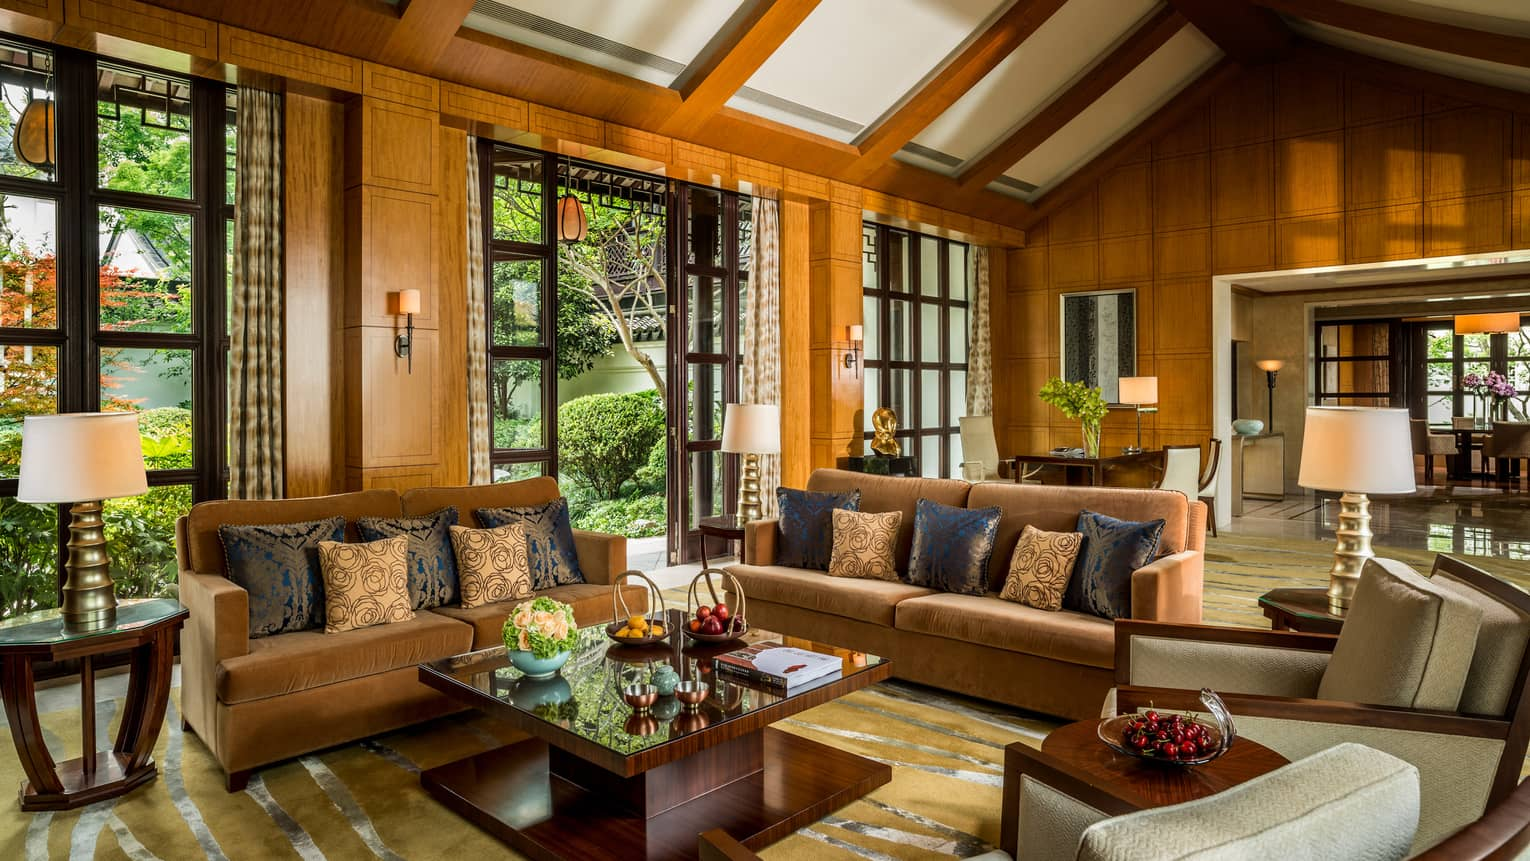 Presidential Villa with two orange velvet sofas, chairs around modern wood table